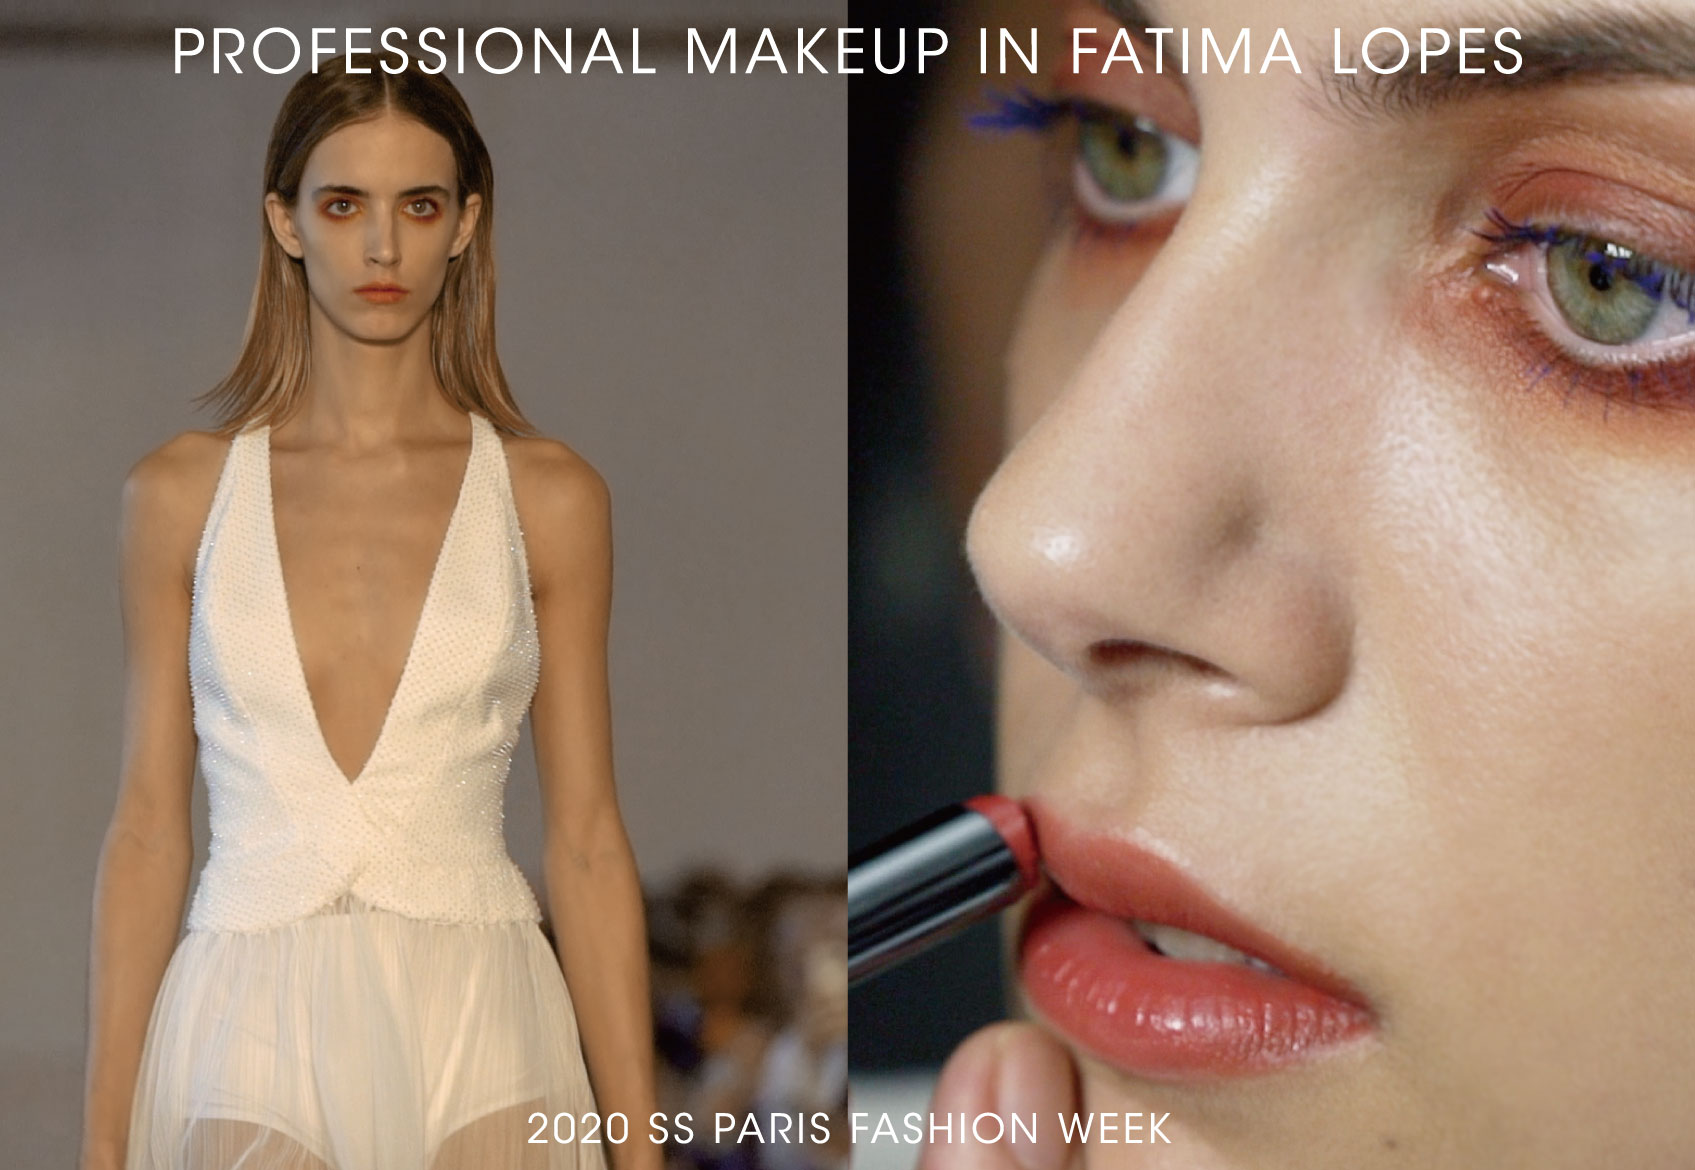 FATIMA LOPES COLLECTION 2020 SS